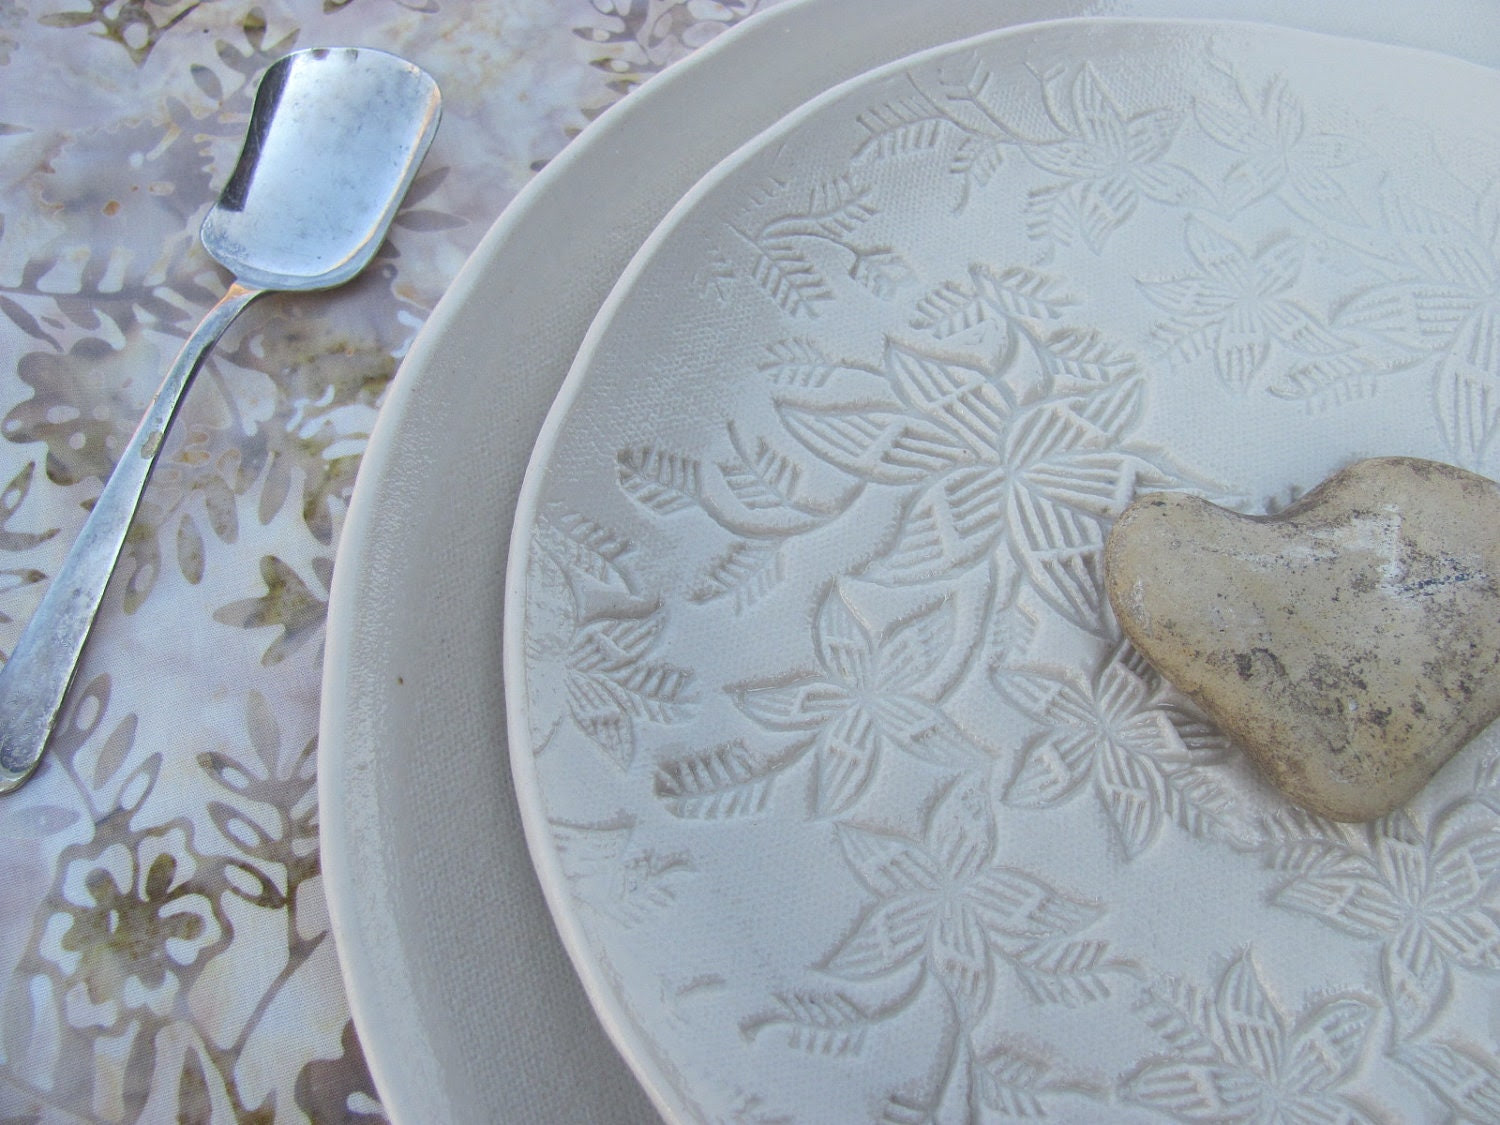 Made to Order, Porcelain Dinner and Salad Plate Set in a Simple White Handmade